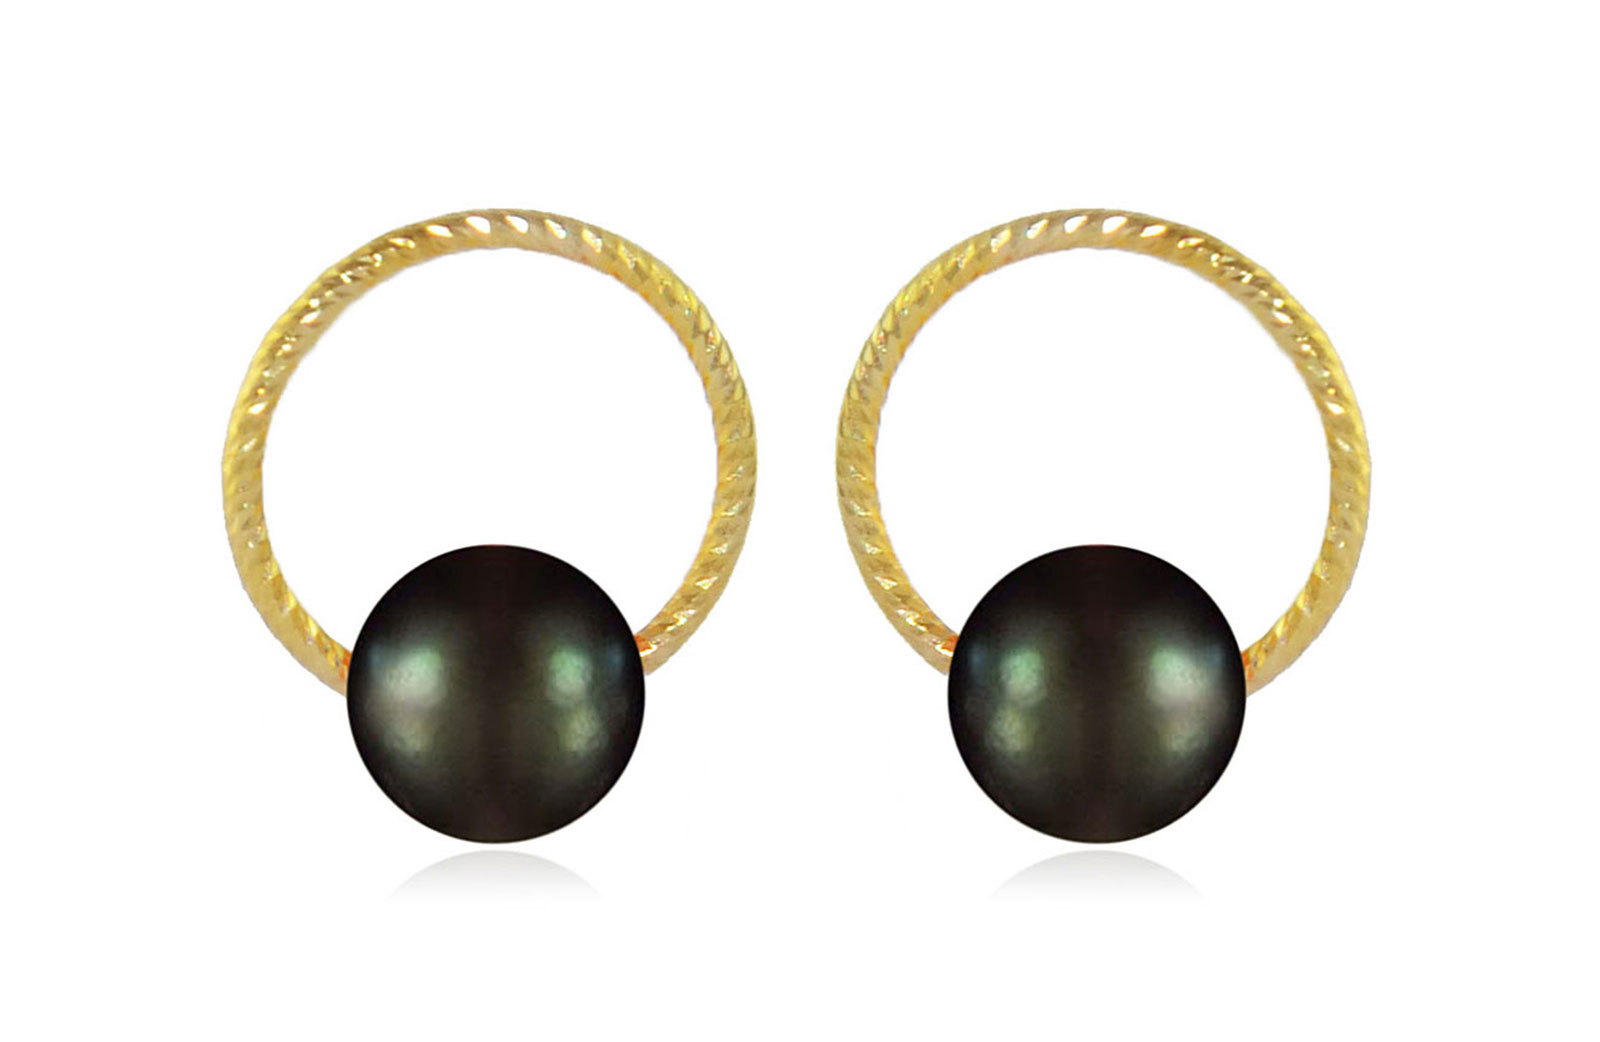 Vera Perla 10k Gold, Delicate 7mm Black Round Pearl Hoop Earrings